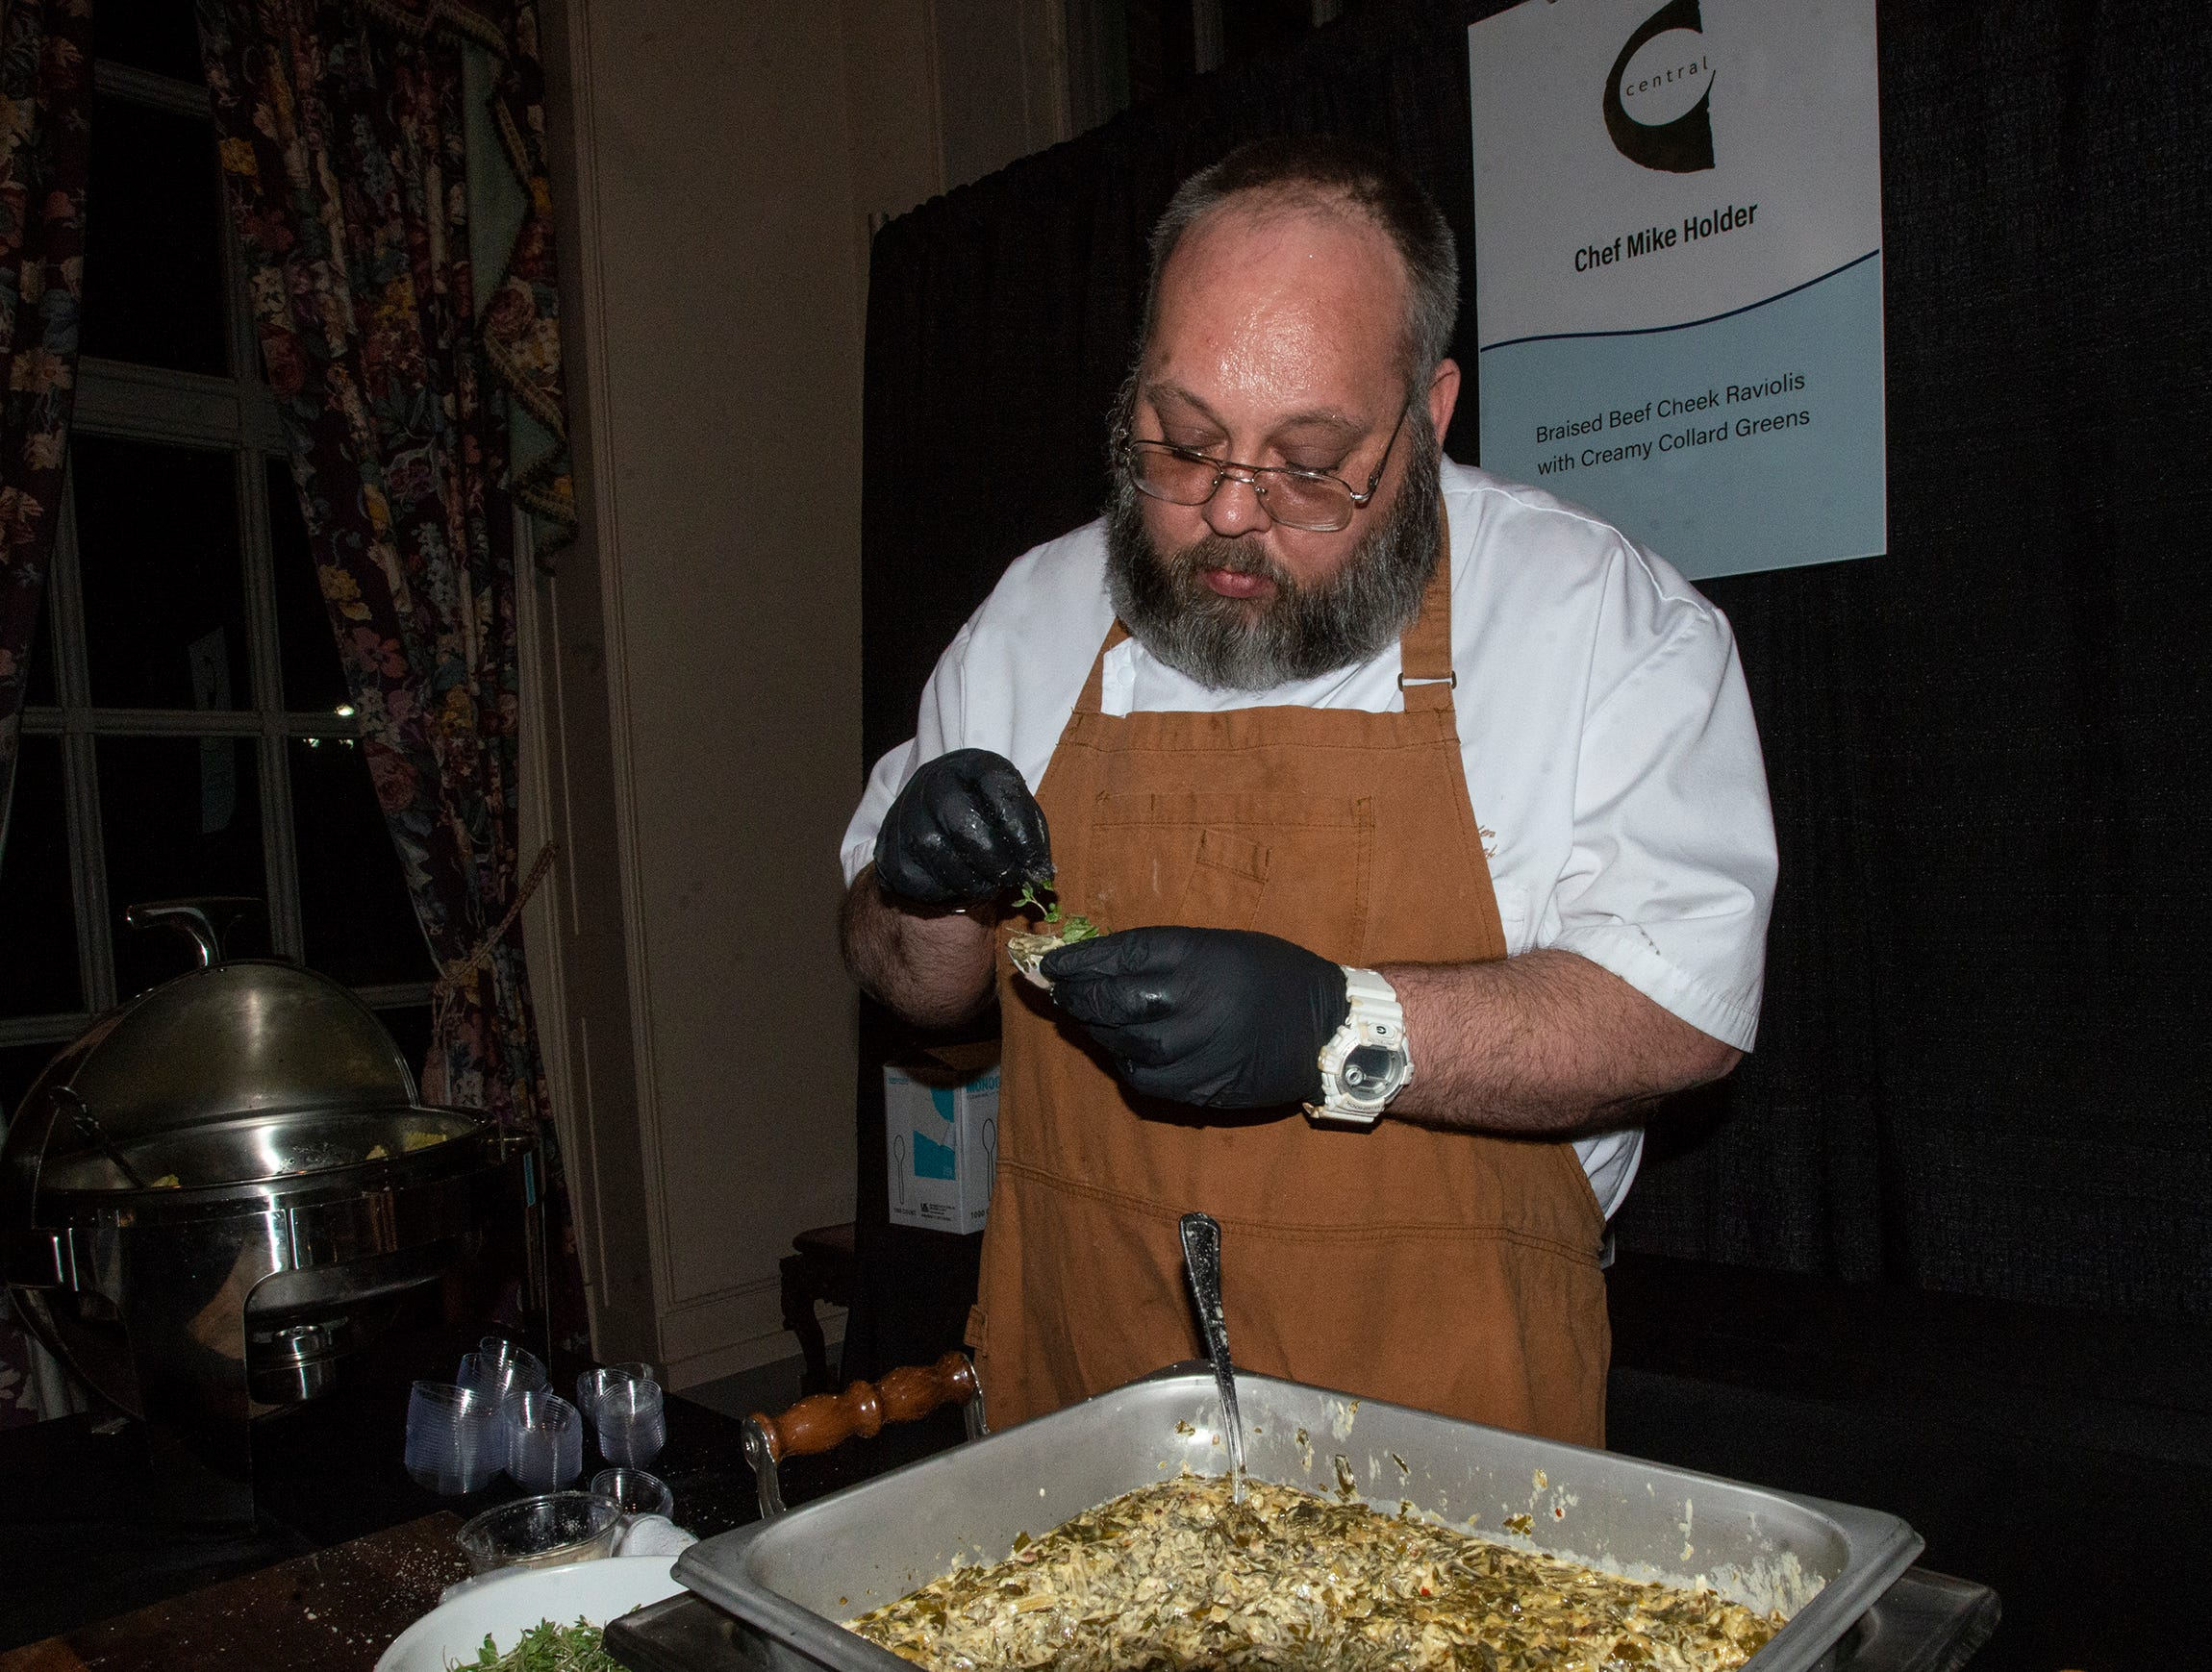 Central served guests Braised Beef Cheek Raviolis with Creamy Collard Greens. The annual Feast of Flavours was held Monday, Jan. 28, 2019, at Alabama Shakespeare Festival in Montgomery.